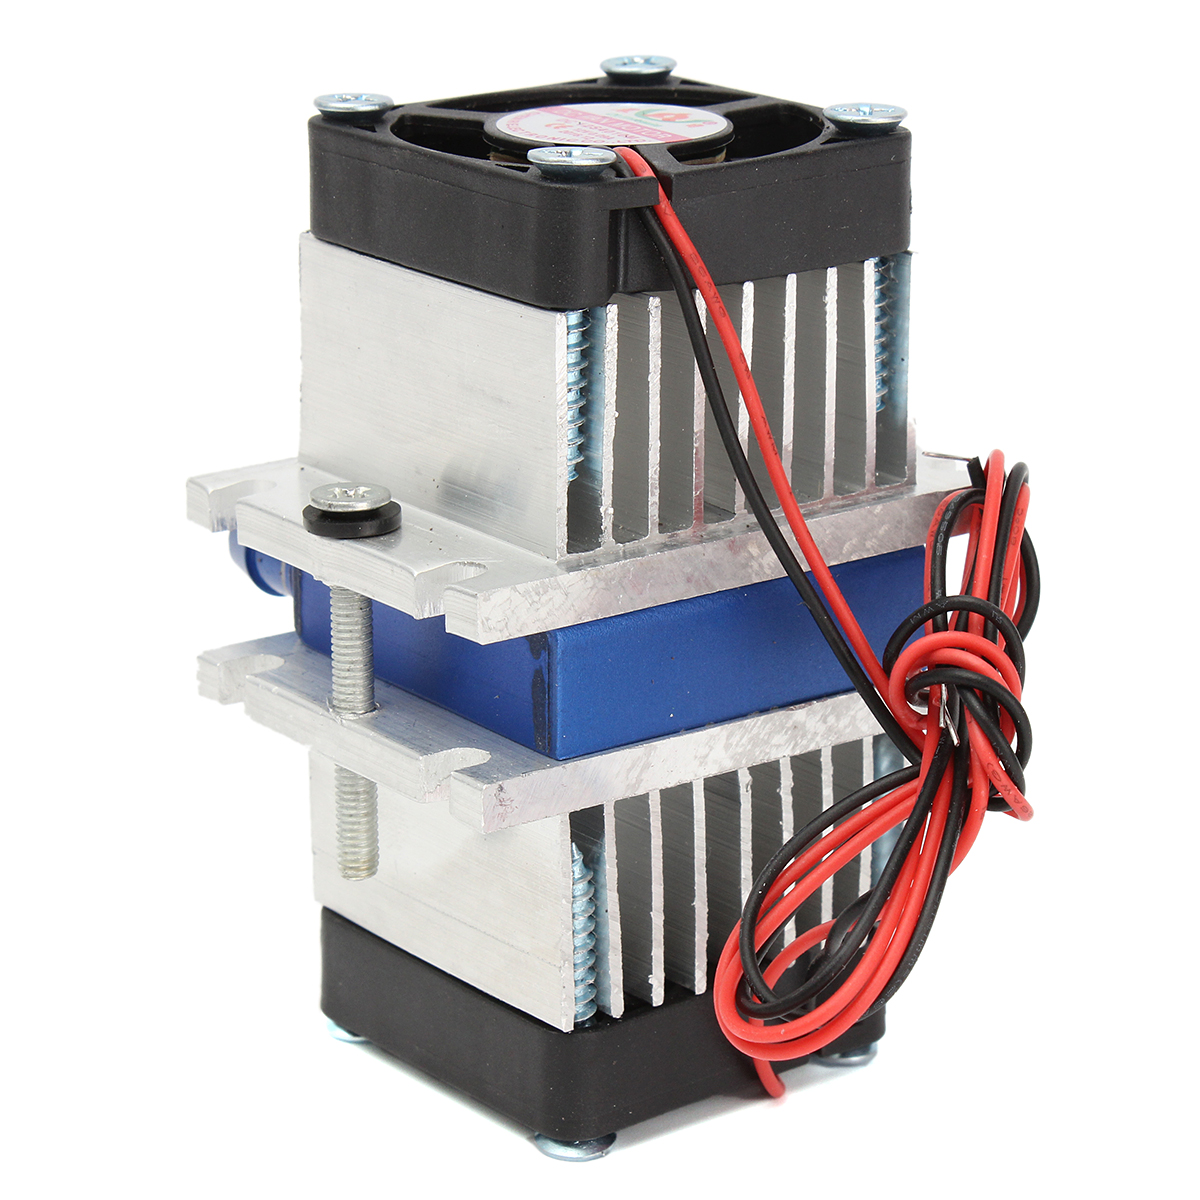 10-50C R/&D Thermoelectric Cooler P/&N TECHNOLOGY Small Thermoelectric Peltier Air Cooler 100W 24V